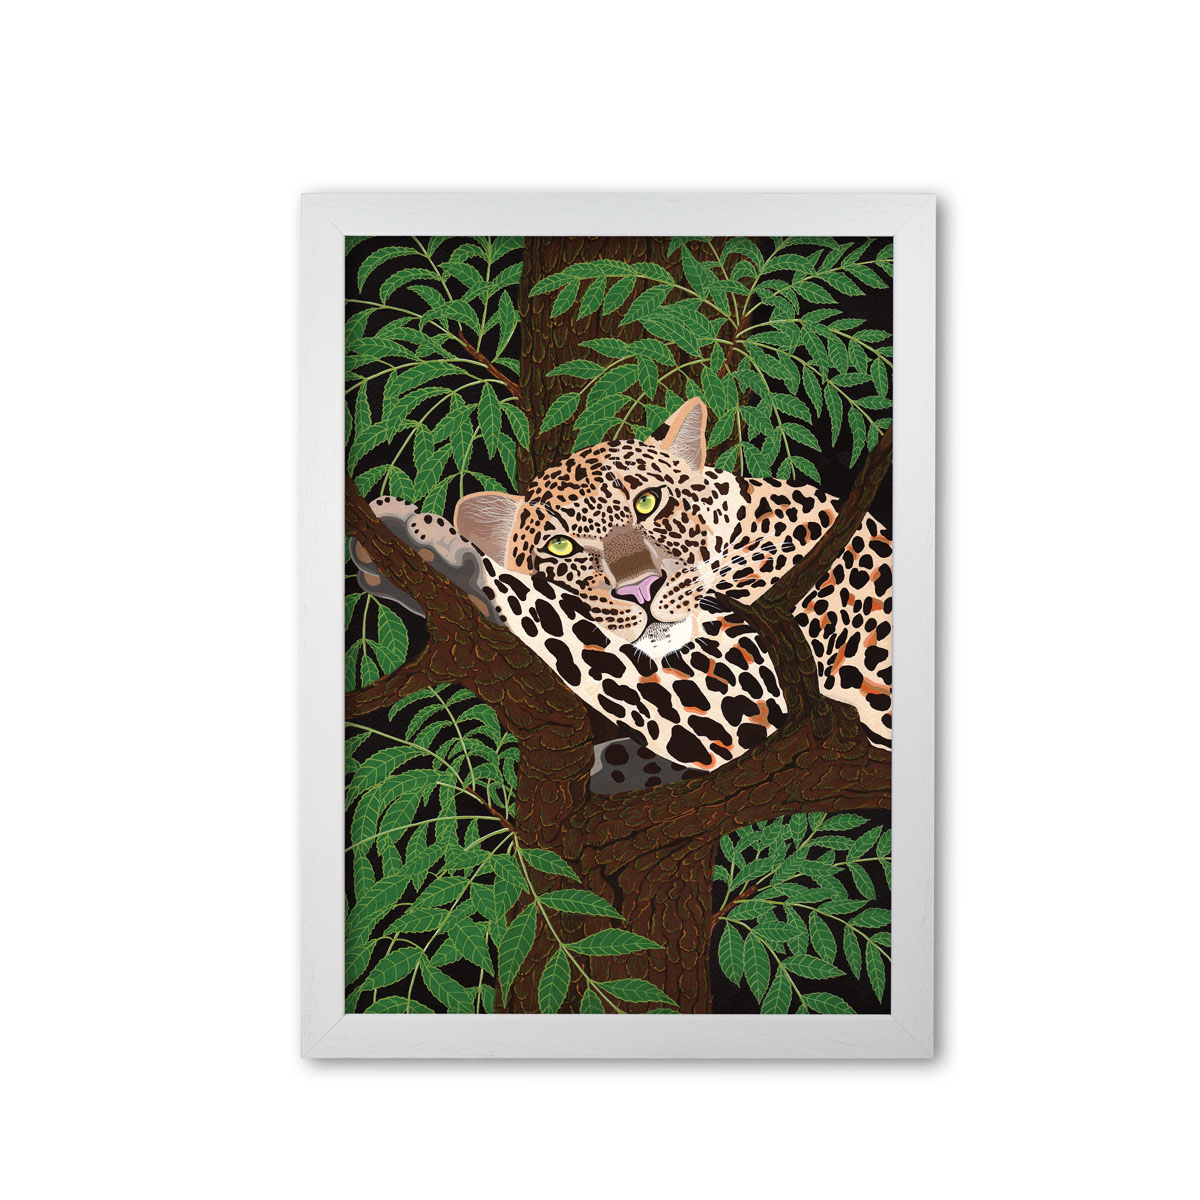 Leopard Art Print Mounted And Framed By Bird The Artist